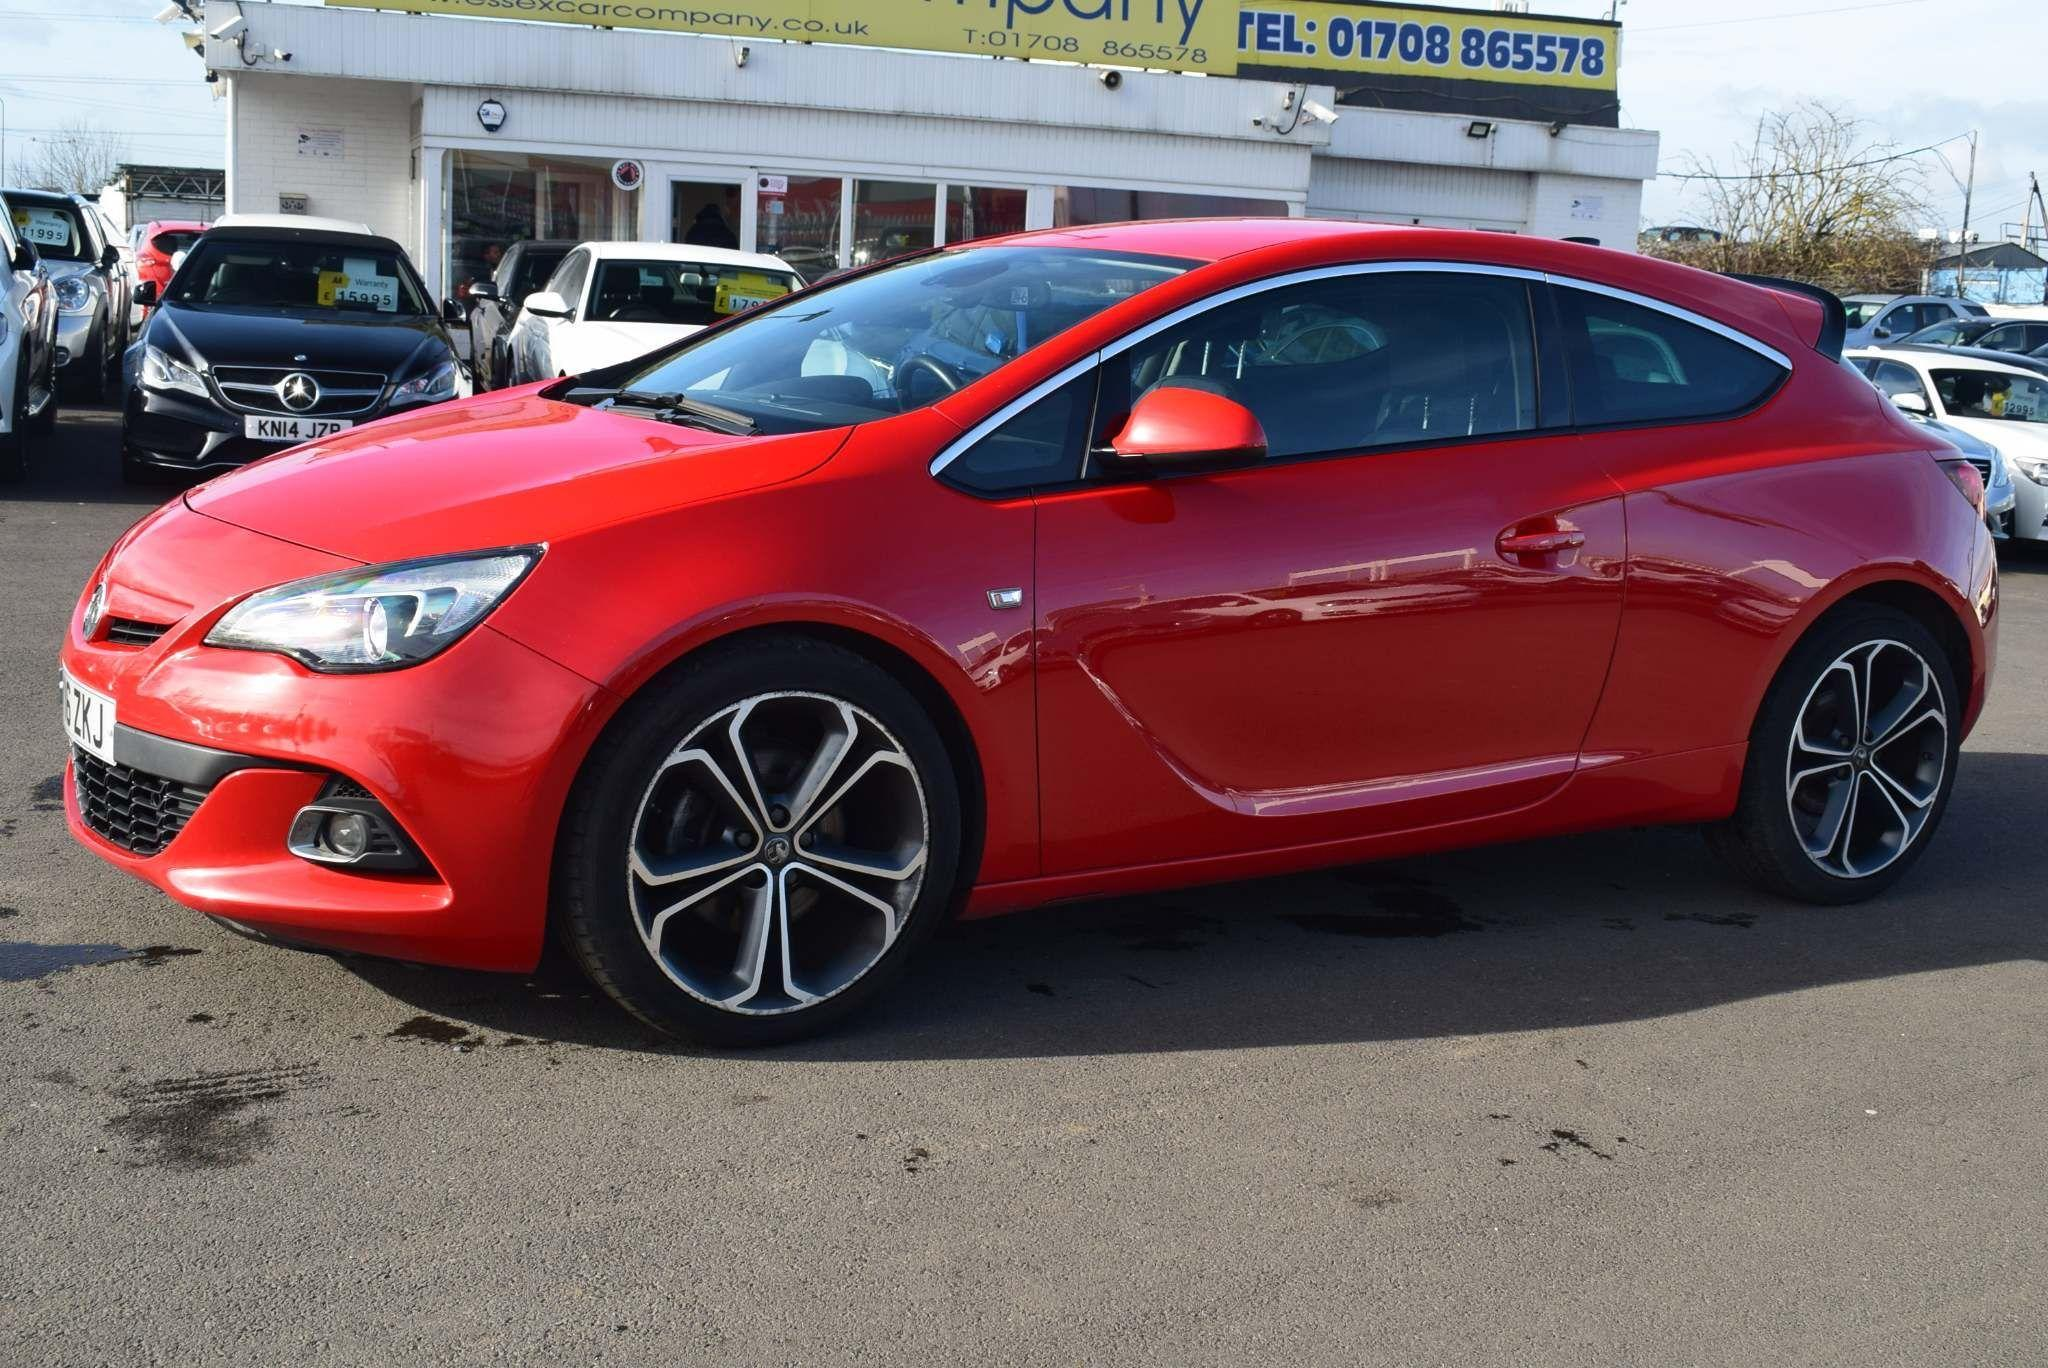 Vauxhall Astra GTC 1.6 CDTi ecoFLEX Limited Edition (s/s) 3dr Coupe Diesel Red